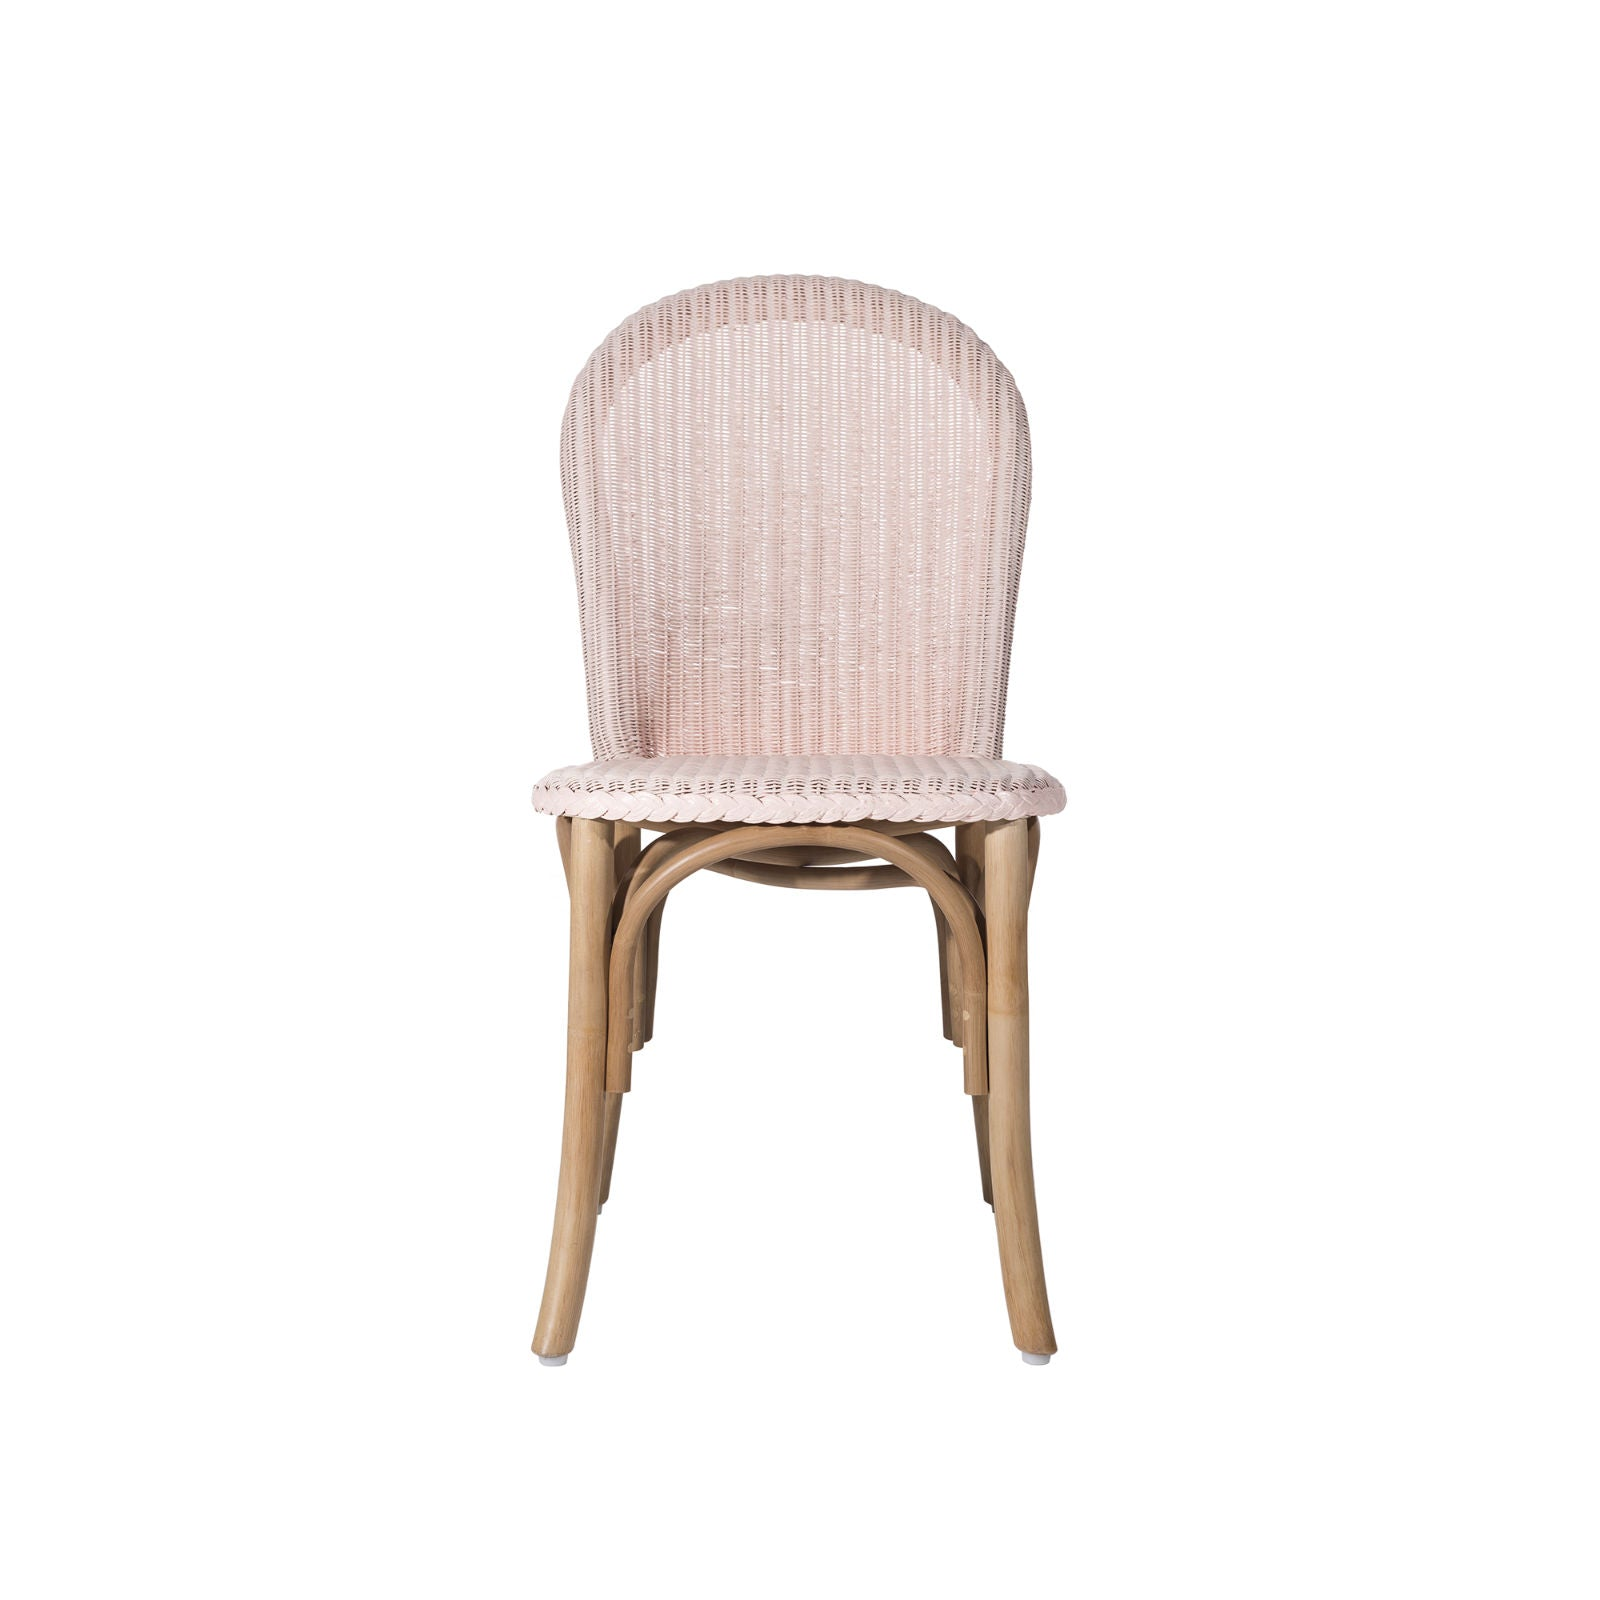 Draper Chair in Pink no. 1